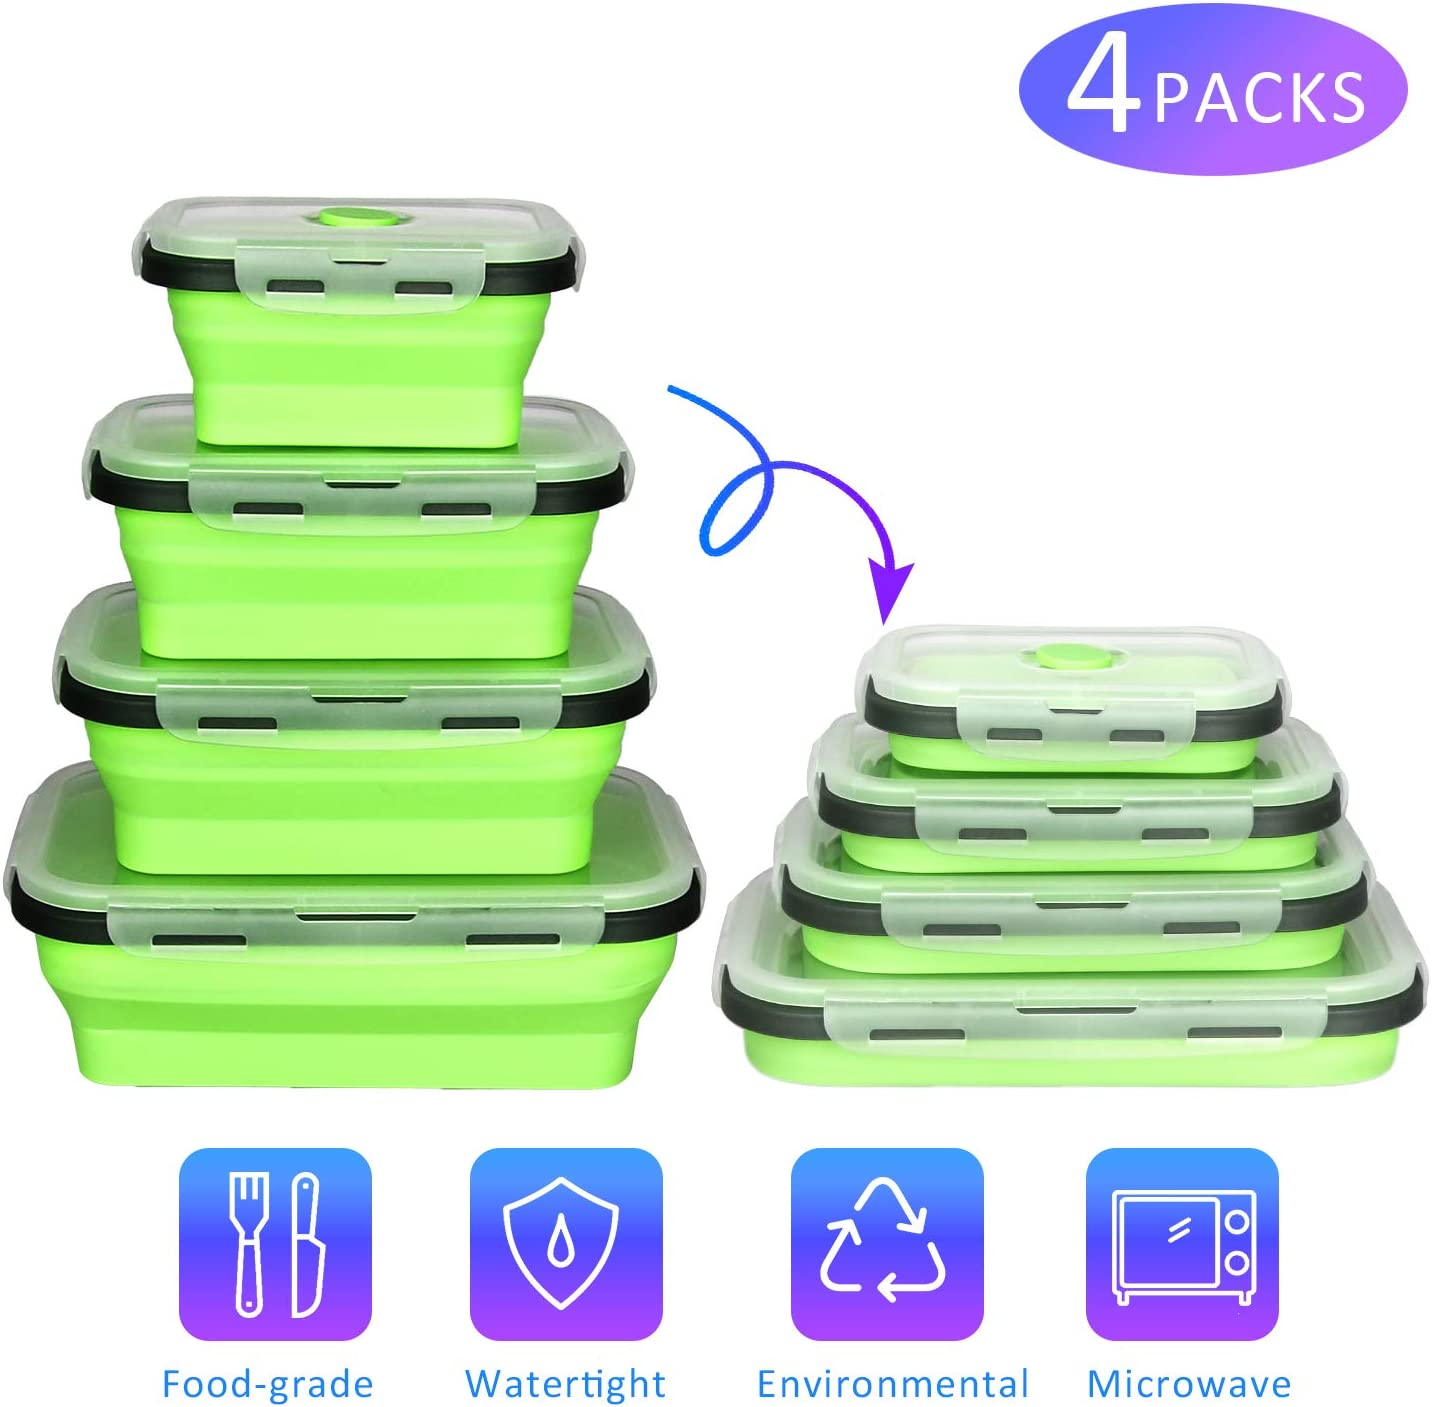 Silicone Collapsible Food Storage Containers,CREPOW Set of 4 Silicone Lunch box Containers for Kids or Kitchen, BPA Free, Microwave, Dishwasher and Freezer Safe (Green)